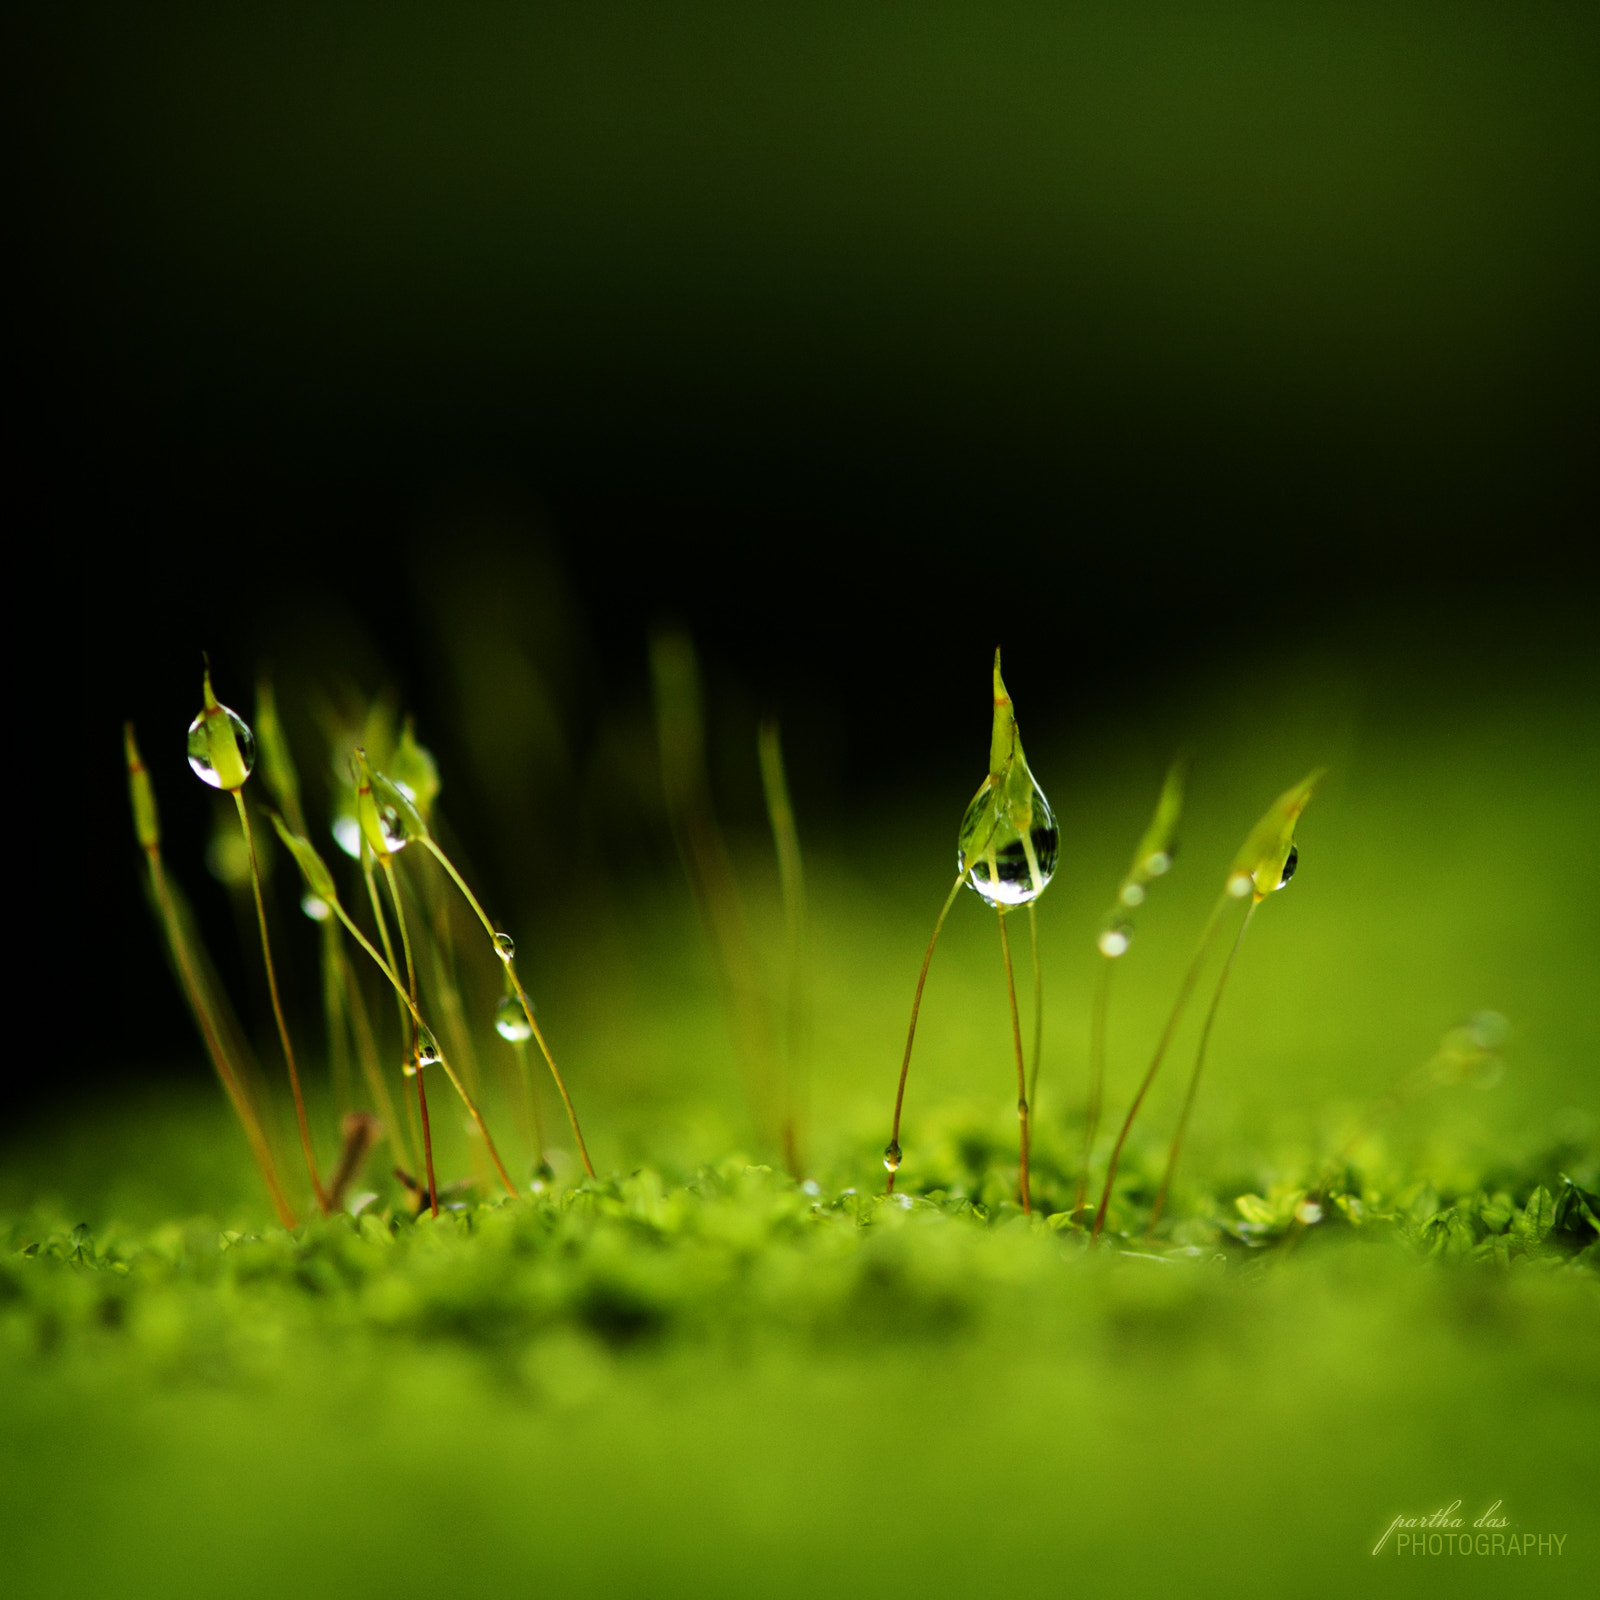 Photograph dew drops! by Partha Das on 500px